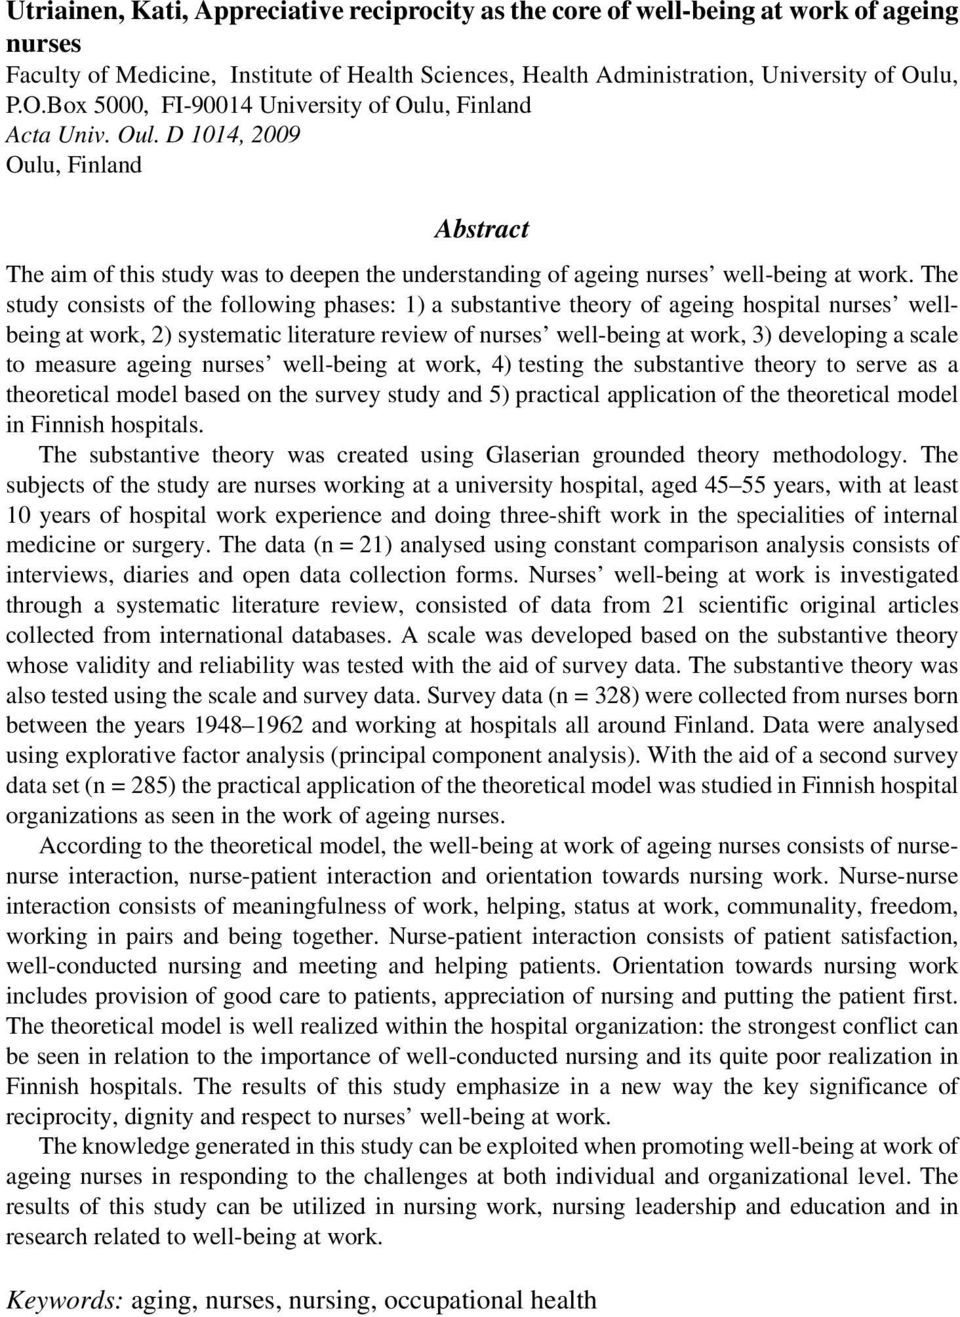 The study consists of the following phases: 1) a substantive theory of ageing hospital nurses wellbeing at work, 2) systematic literature review of nurses well-being at work, 3) developing a scale to